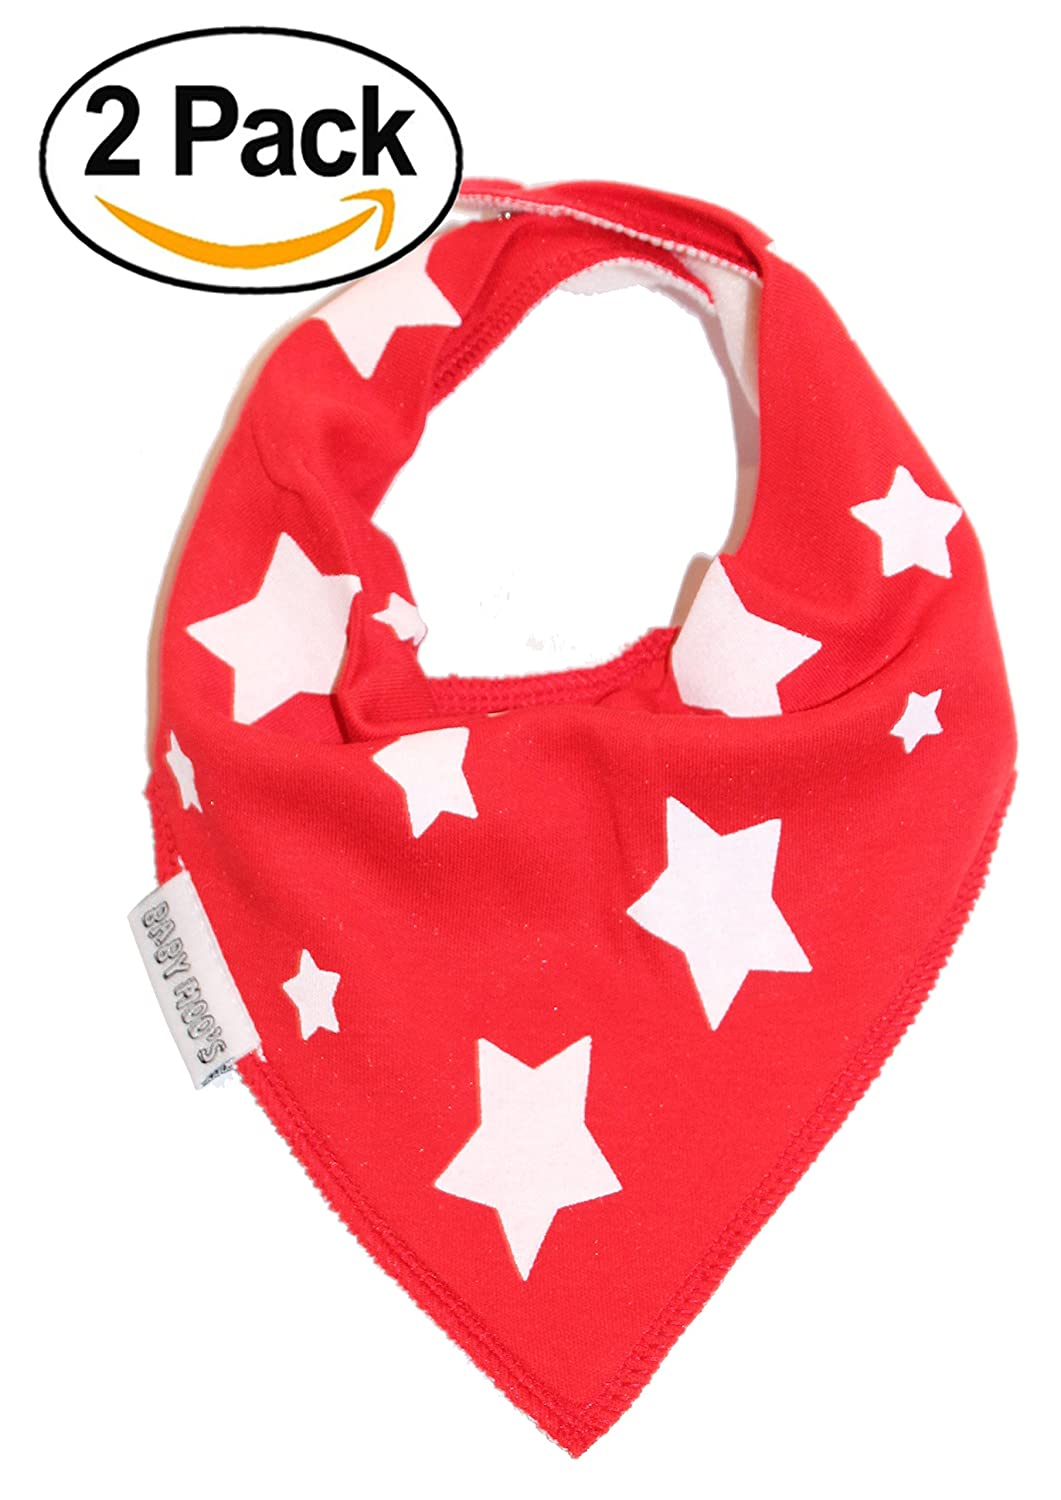 2 x AWARD WINNING Red Twinkle Stars Baby Dribble Bibs | Trendy Baby Bandana Bib [PACK of 2 | Boys or Girls | 0-3 years] Ideal New Baby Shower, Christmas or 1st Birthday Gift | by BABY MOO'S UK